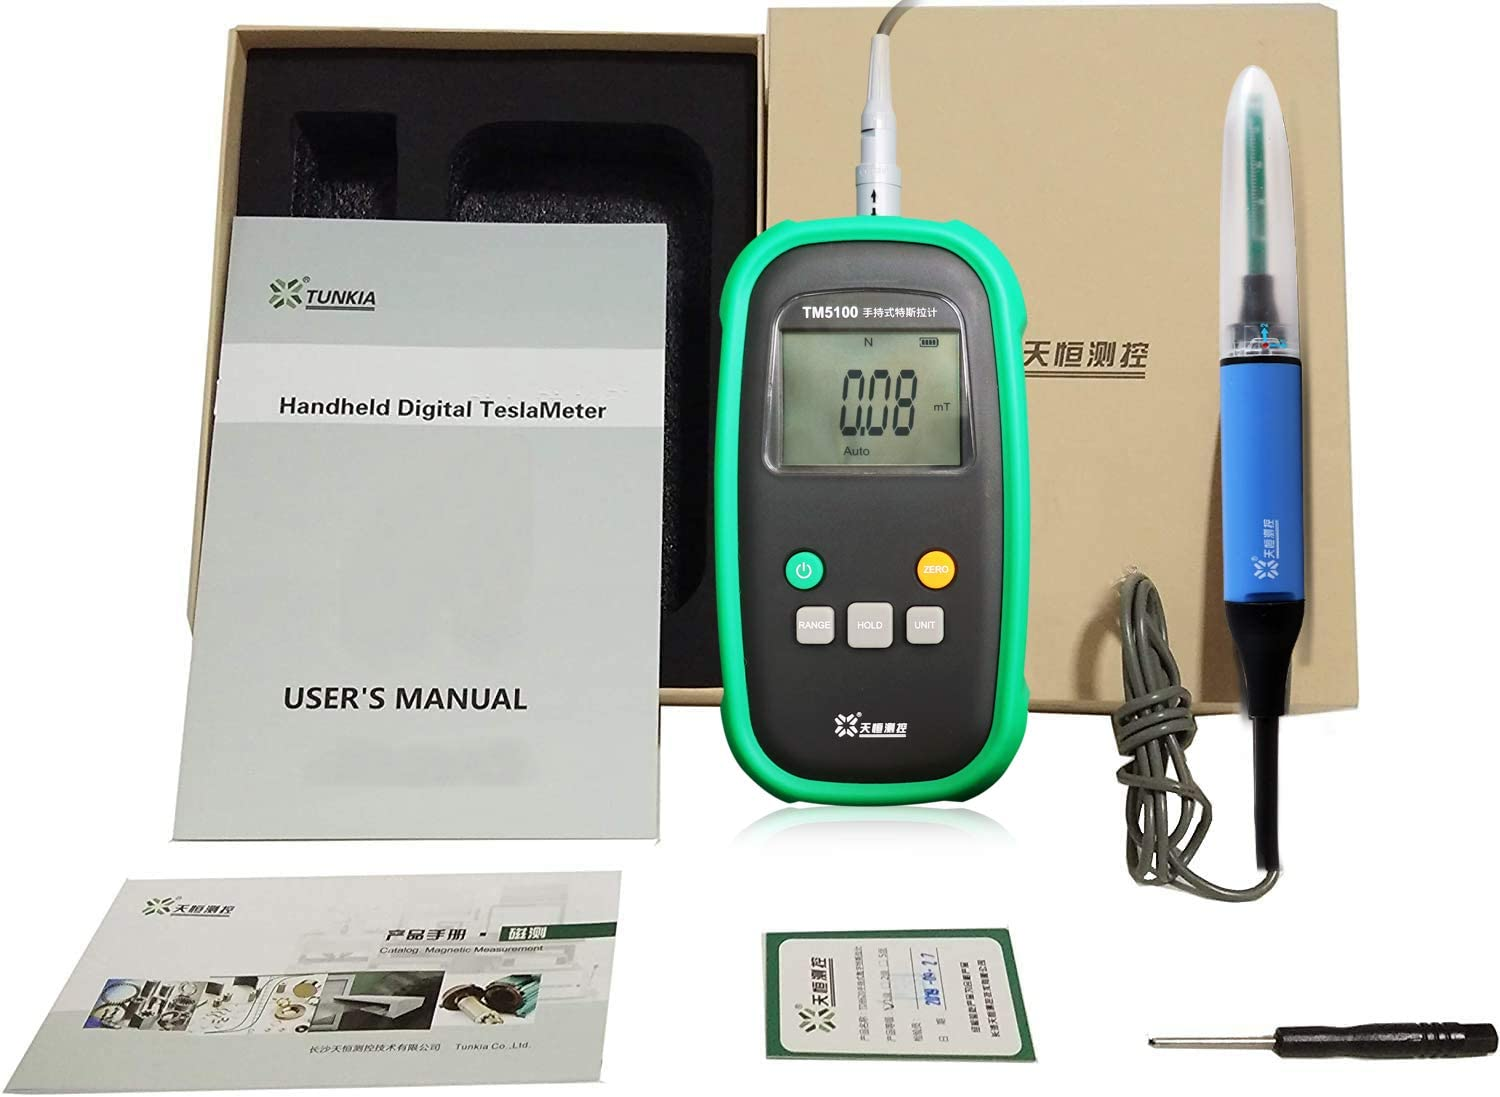 Digital Permanent Magnet Gauss Meter Tesla Meter Gaussmeter with 1% Accuracy Surface Magnetic Field Tester